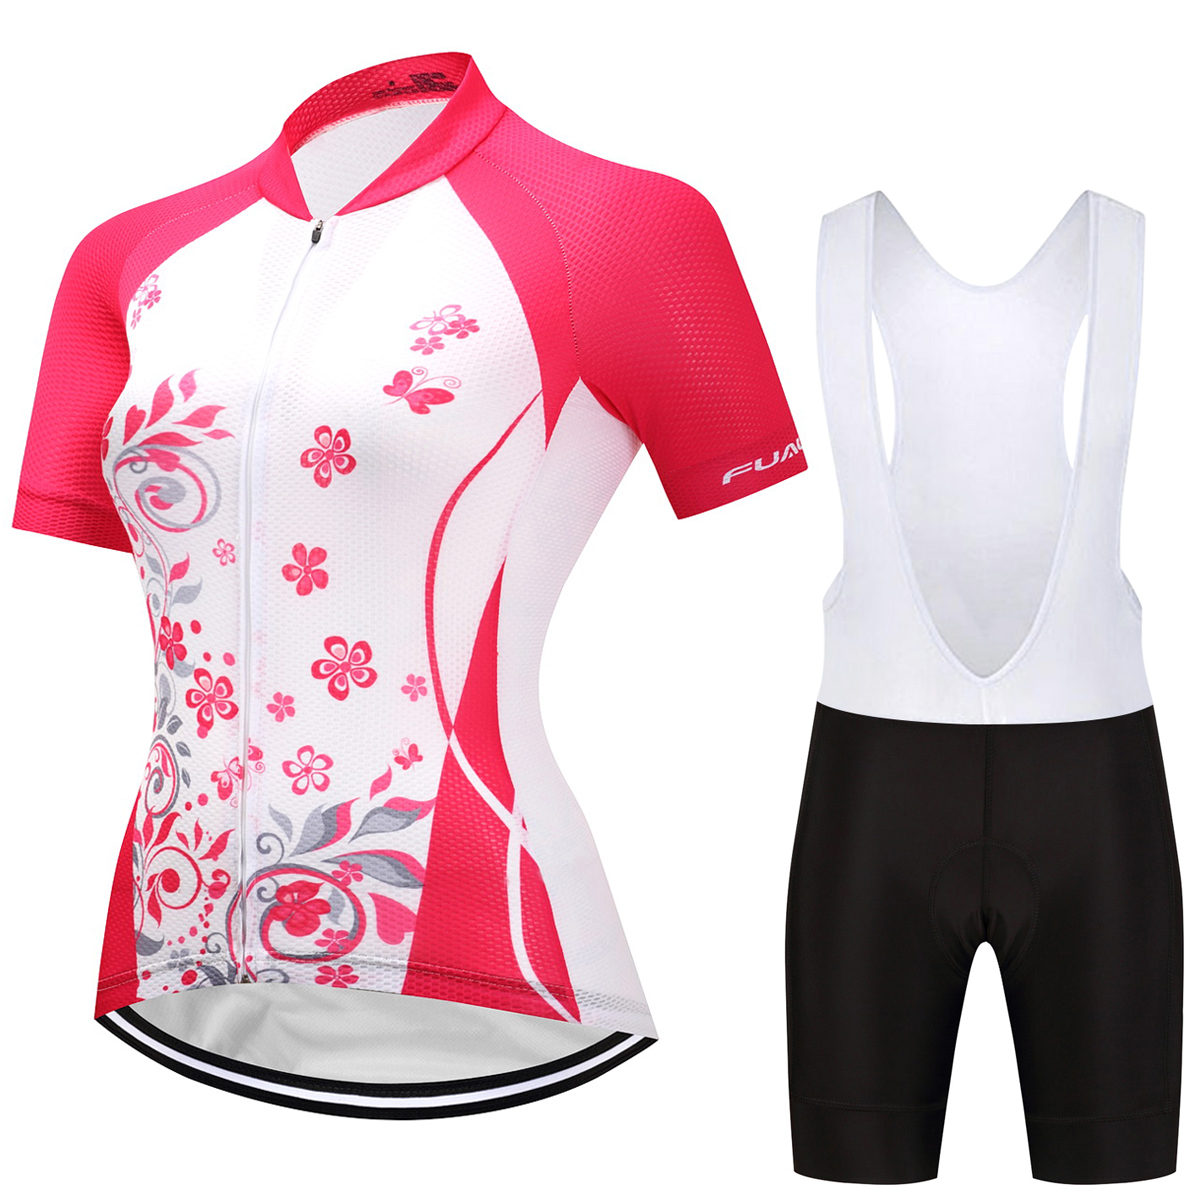 FUALRNY Summer Women Cycling Jersey Sets Short Breathable Cycling Clothing Mountain Bike Clothes Sport Wear Uniforms triathlon fitness women sports wear shorts kit sets cycling jersey mountain bike clothing for spring jersey padded short page 4